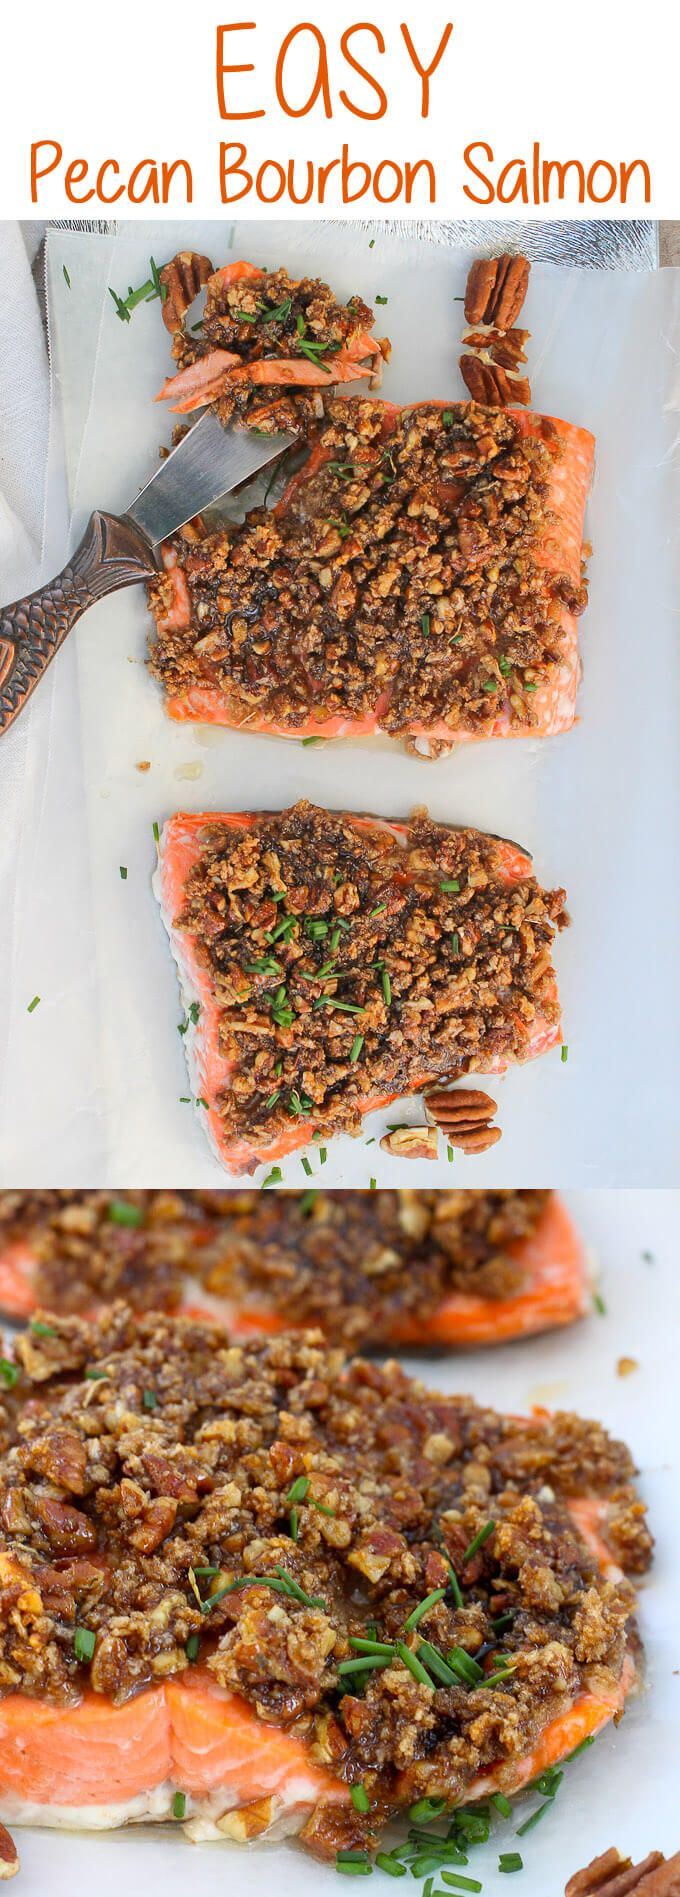 #ad This Baked Pecan Bourbon Salmon is topped with pecans and a maple bourbon sauce, and then baked to juicy, flaky perfection. #Salmon #Seafood #Bourbon via @champagneta0249